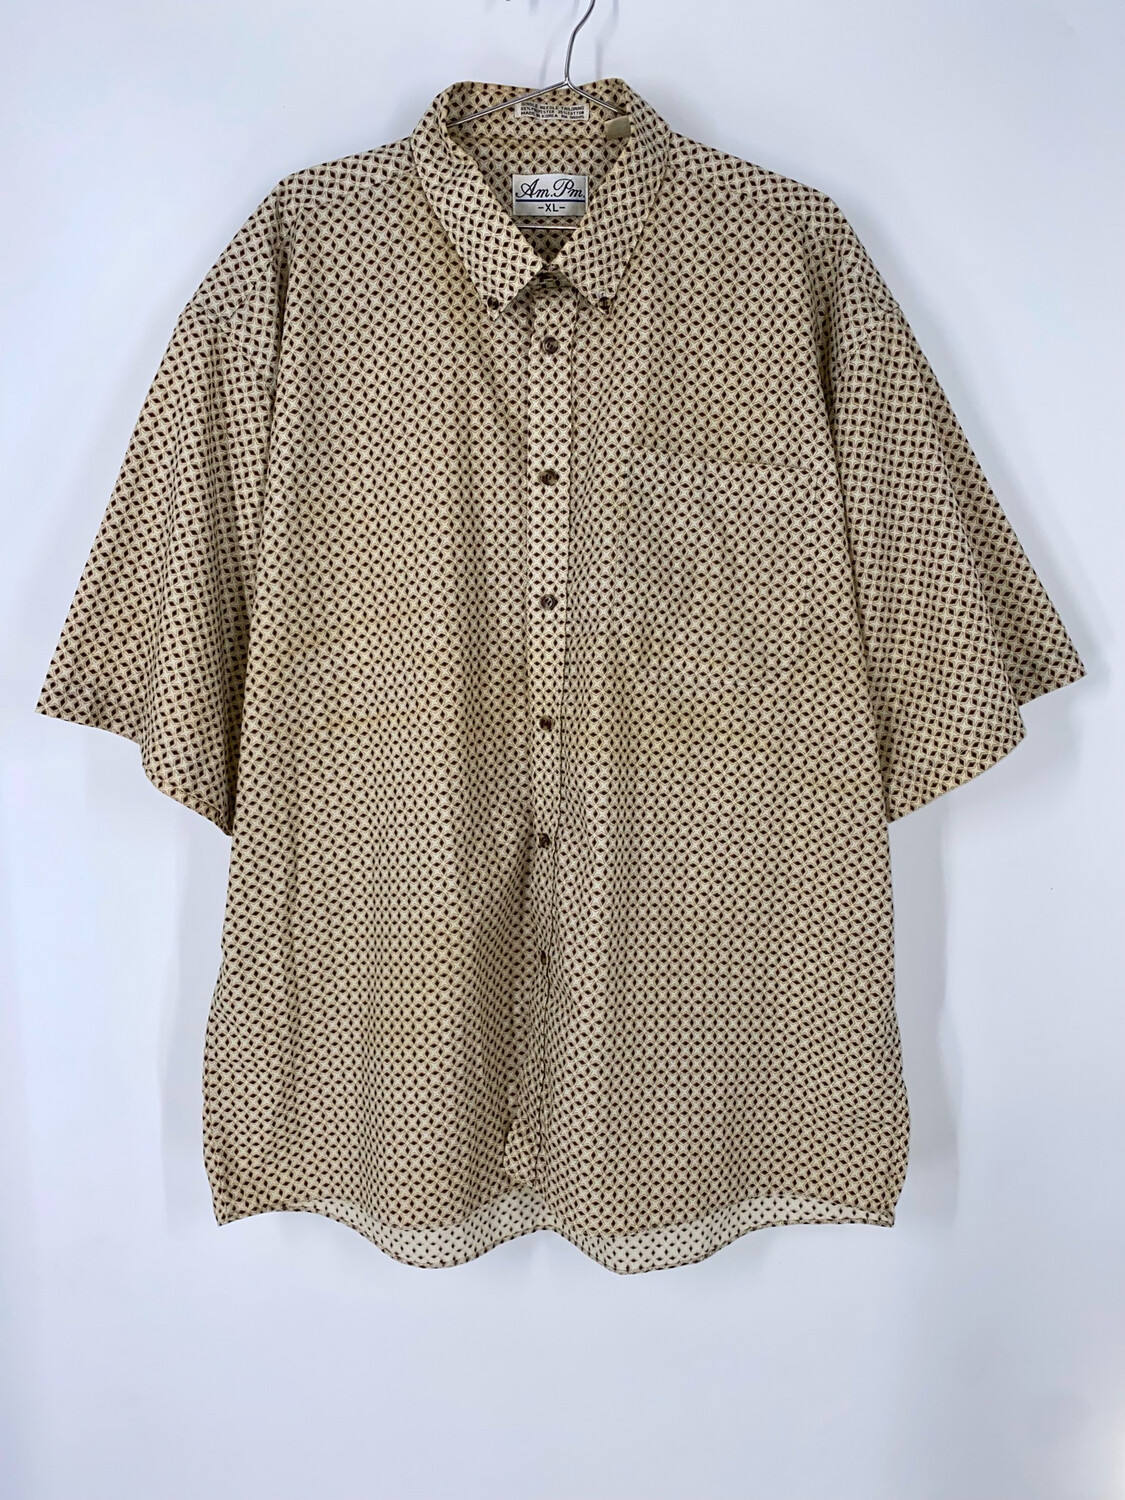 Am.Pm. Patterned Button Down Size XL